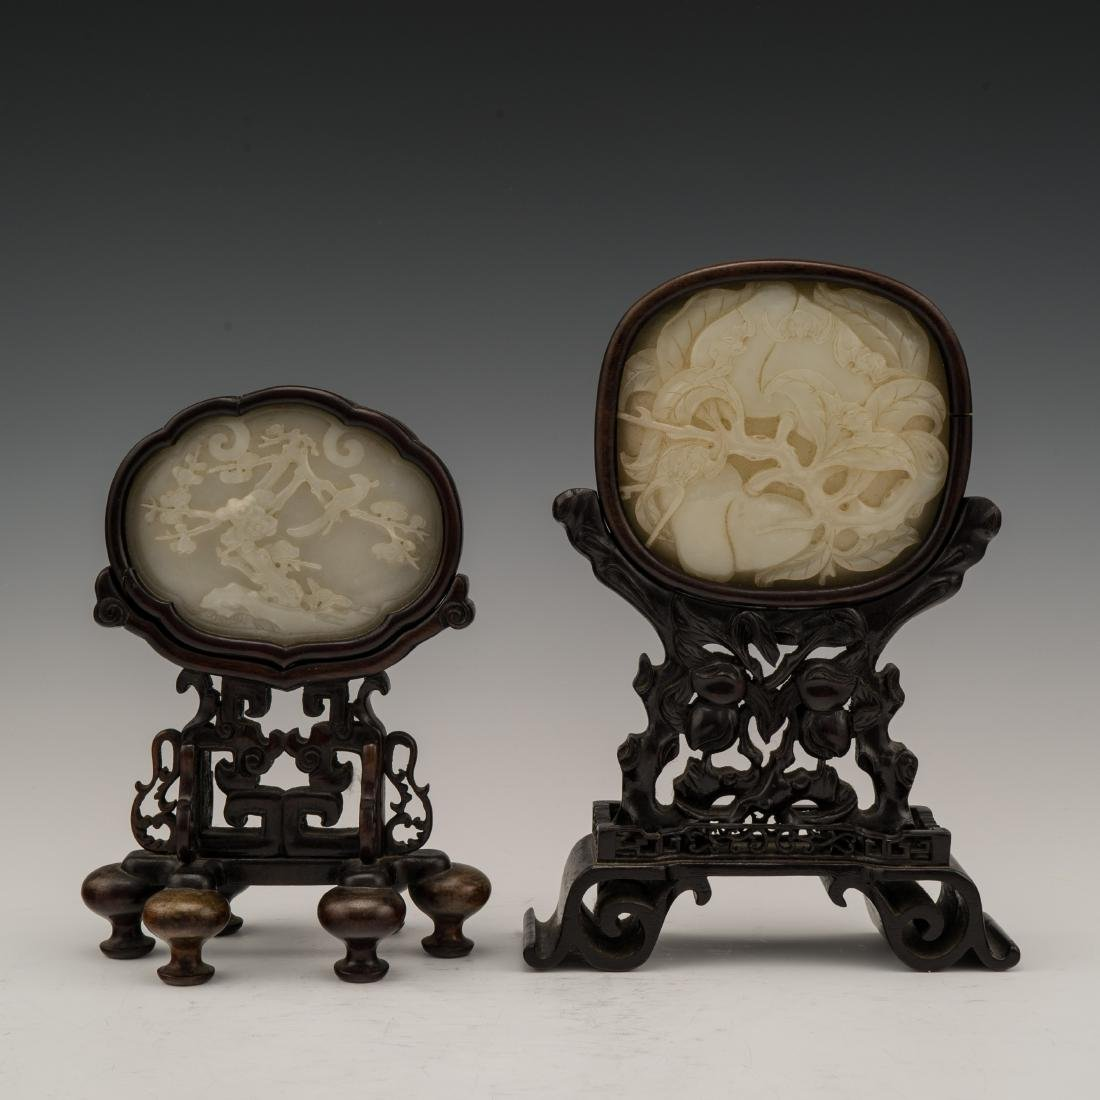 SET OF 2 PCS 19TH C JADE OVAL MEDALLION TABLE SCREEN